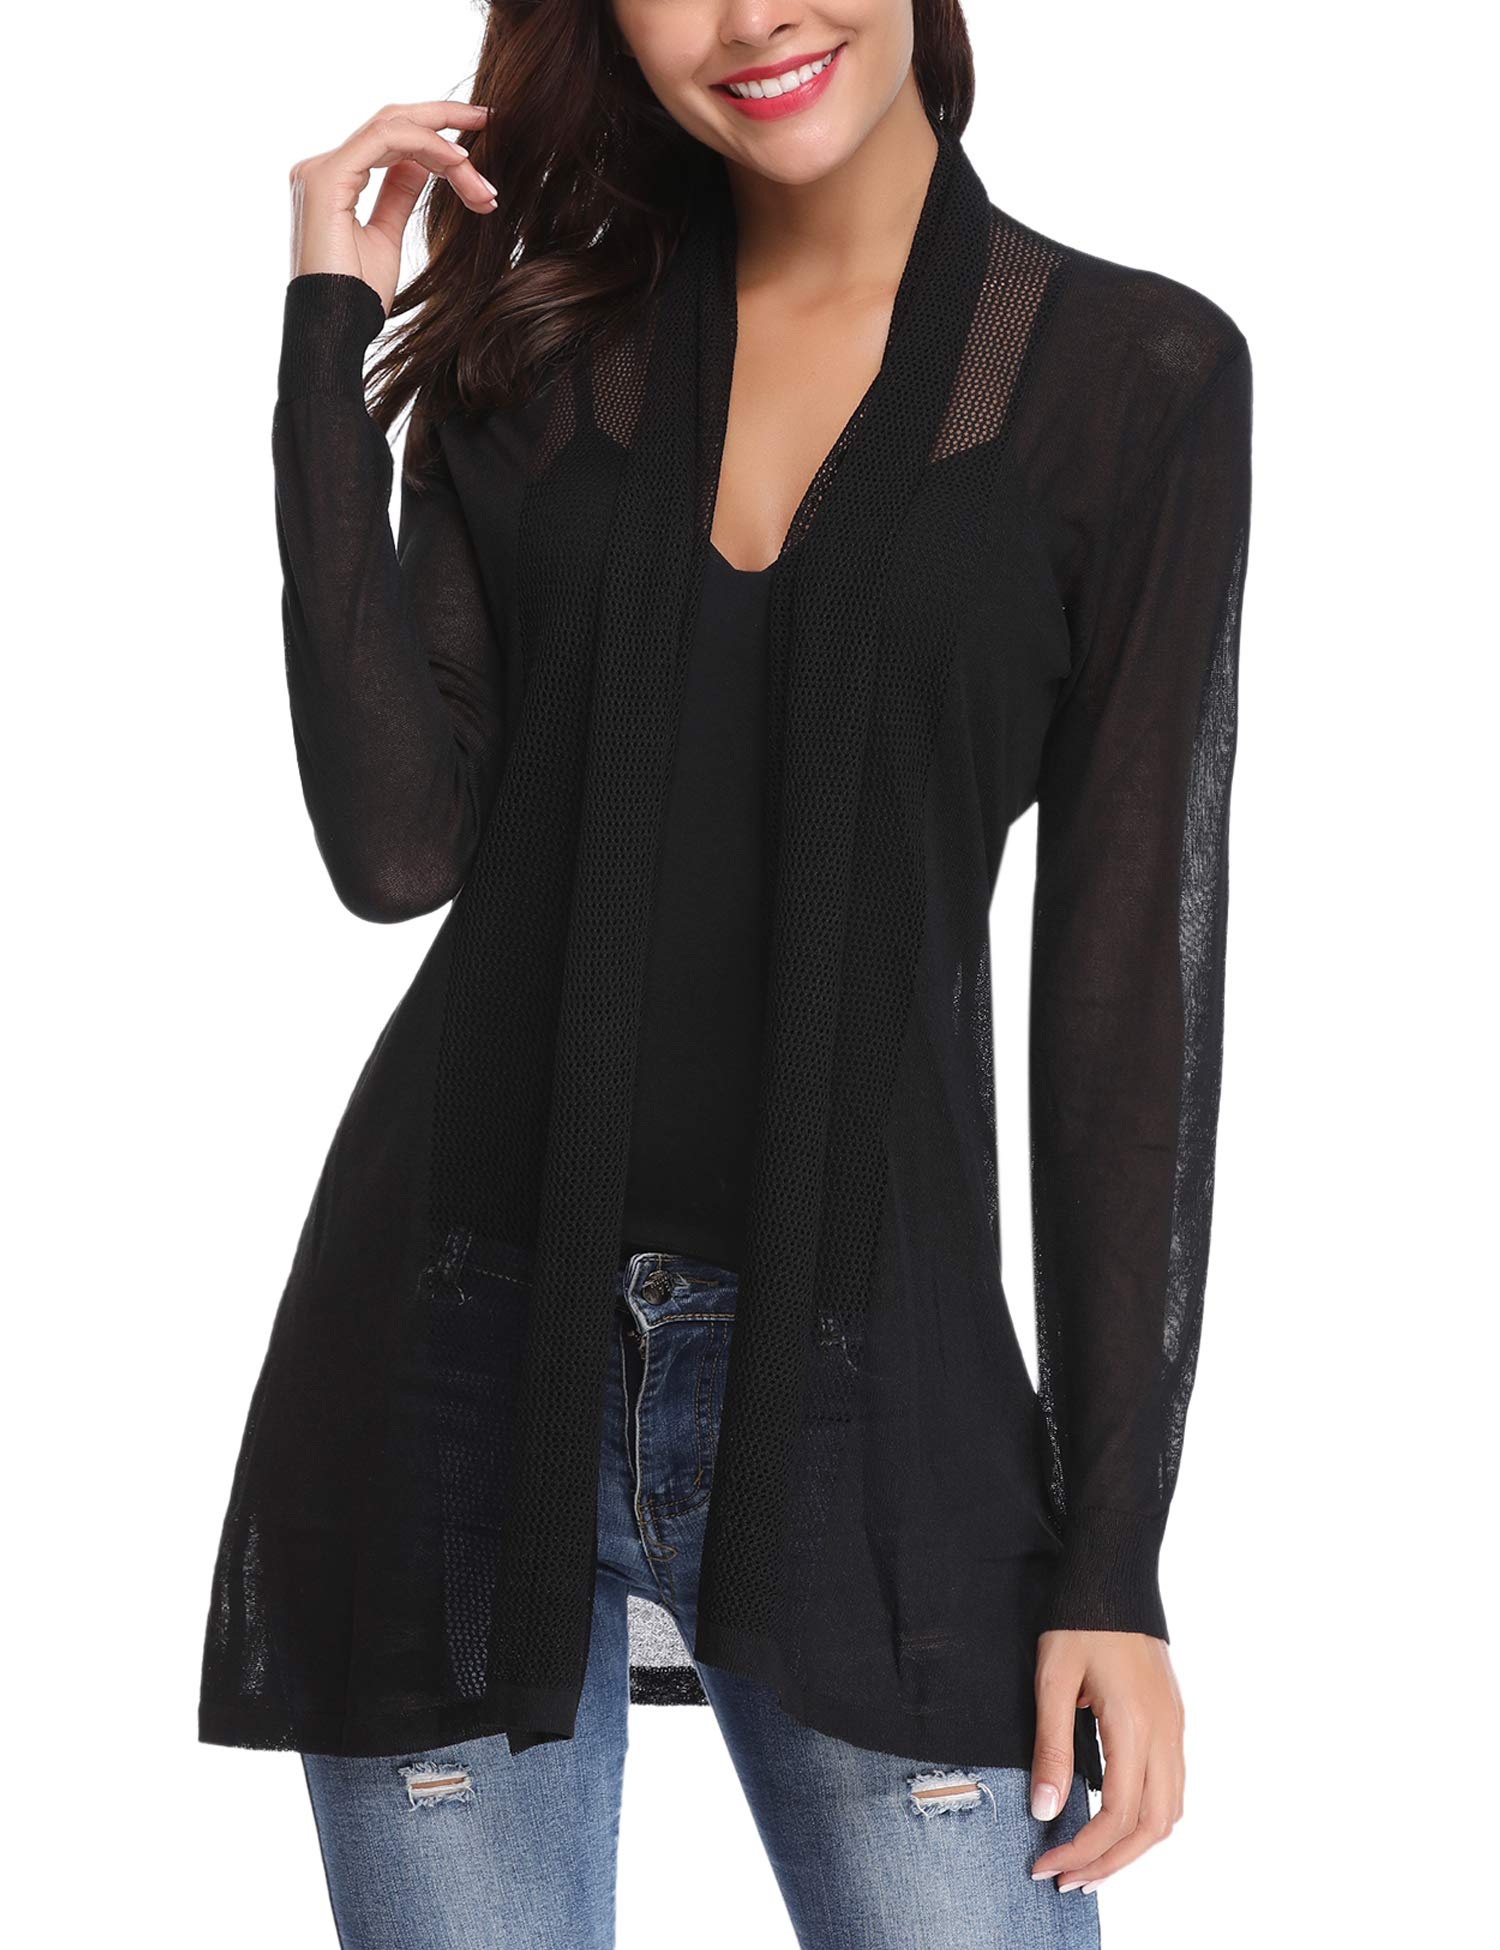 Abollria Womens Casual Long Sleeve Open Front Cardigan Sweater(Black,M)